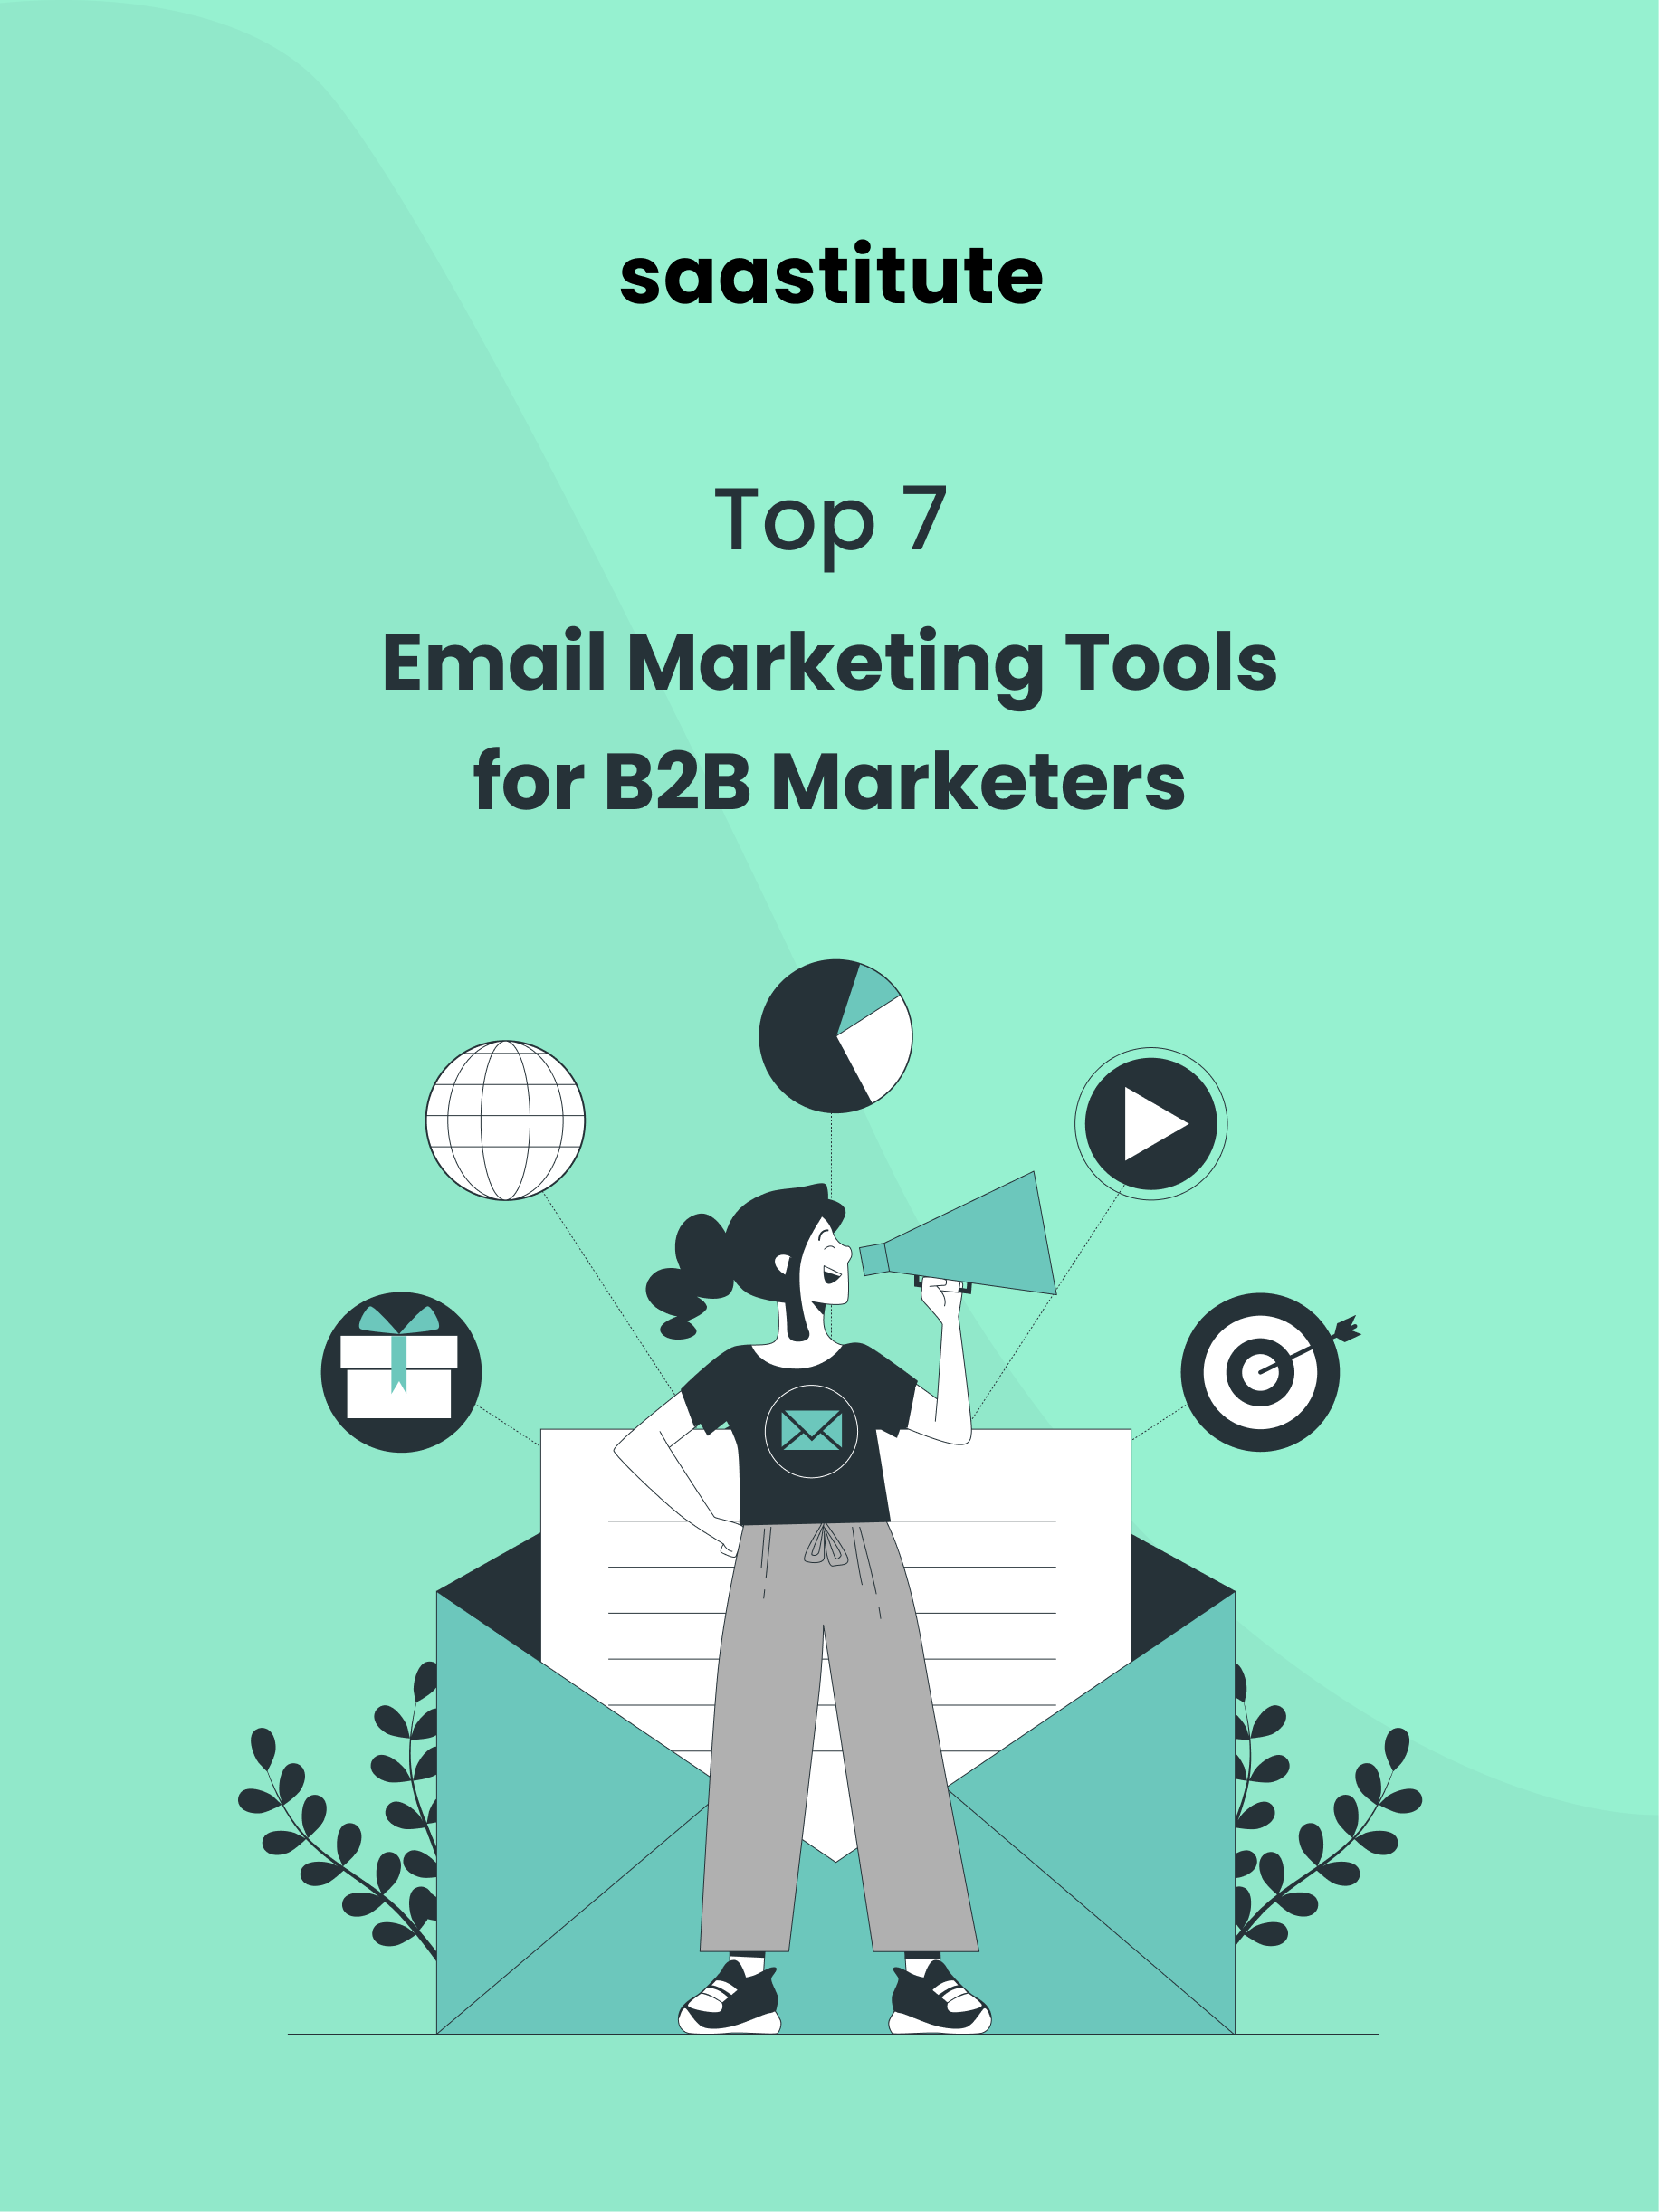 Top 7 Email Marketing Tools for B2B Marketers